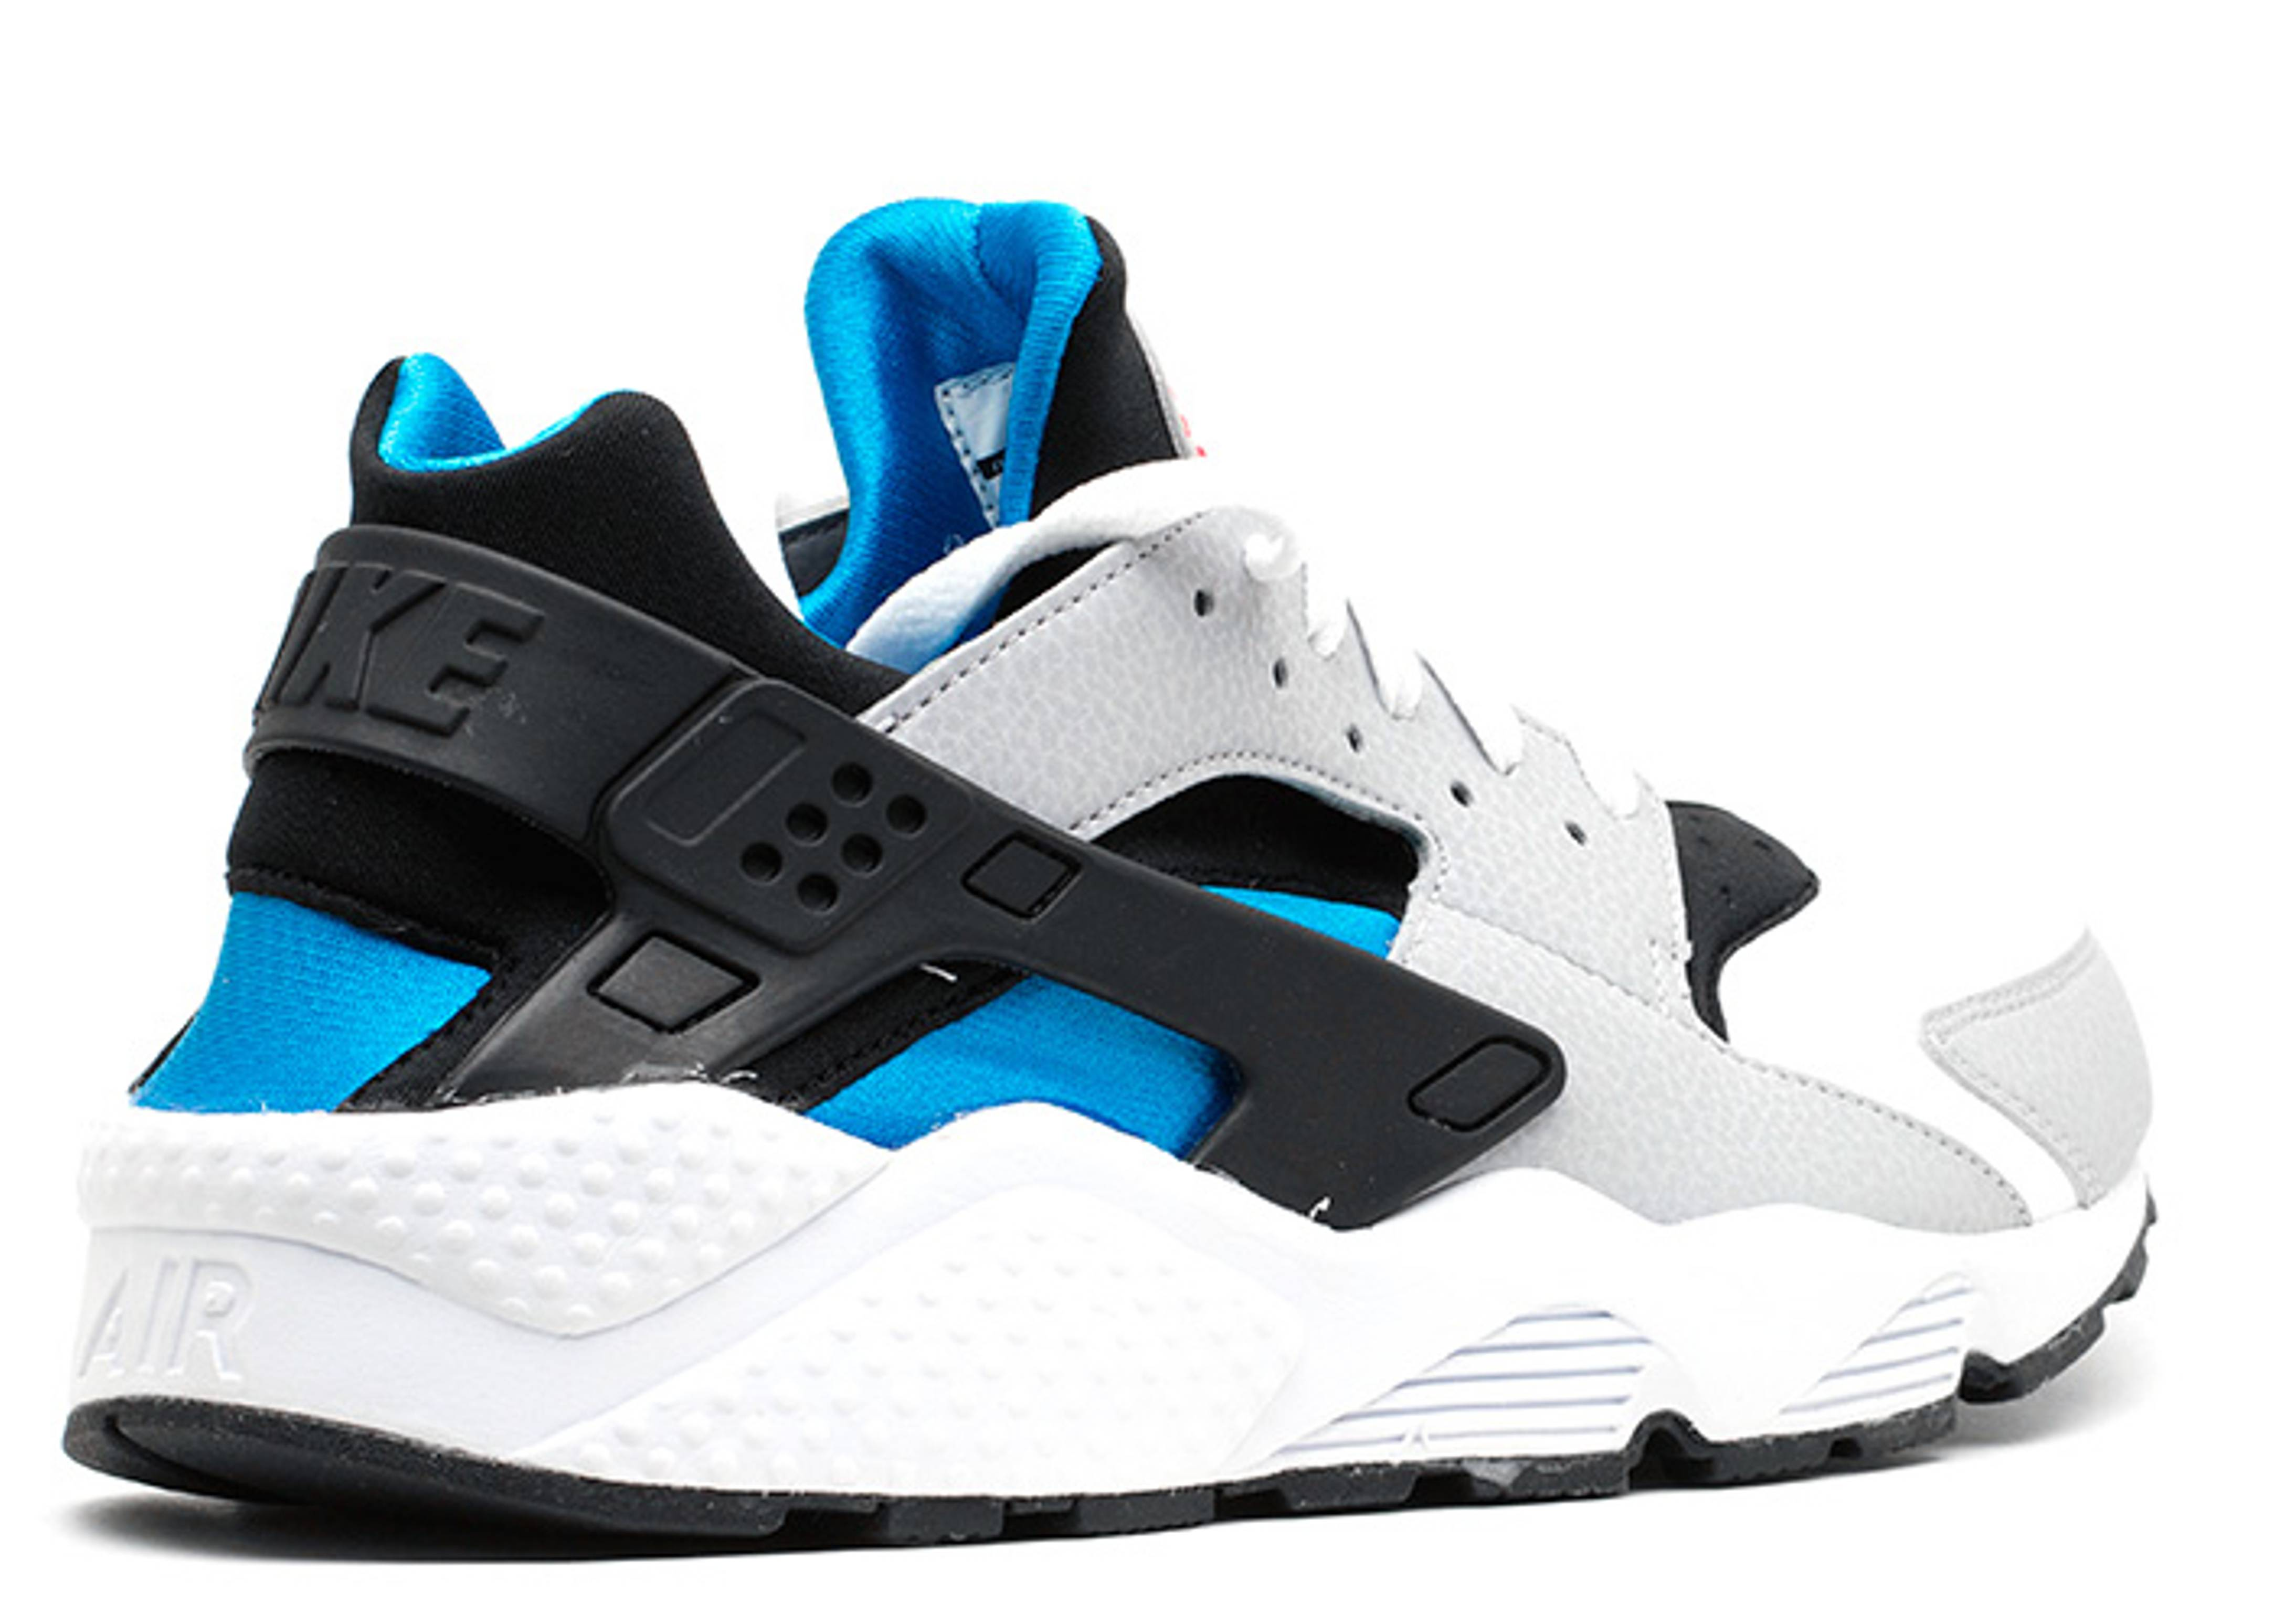 online retailer 4d380 9f7f3 blue and grey huaraches